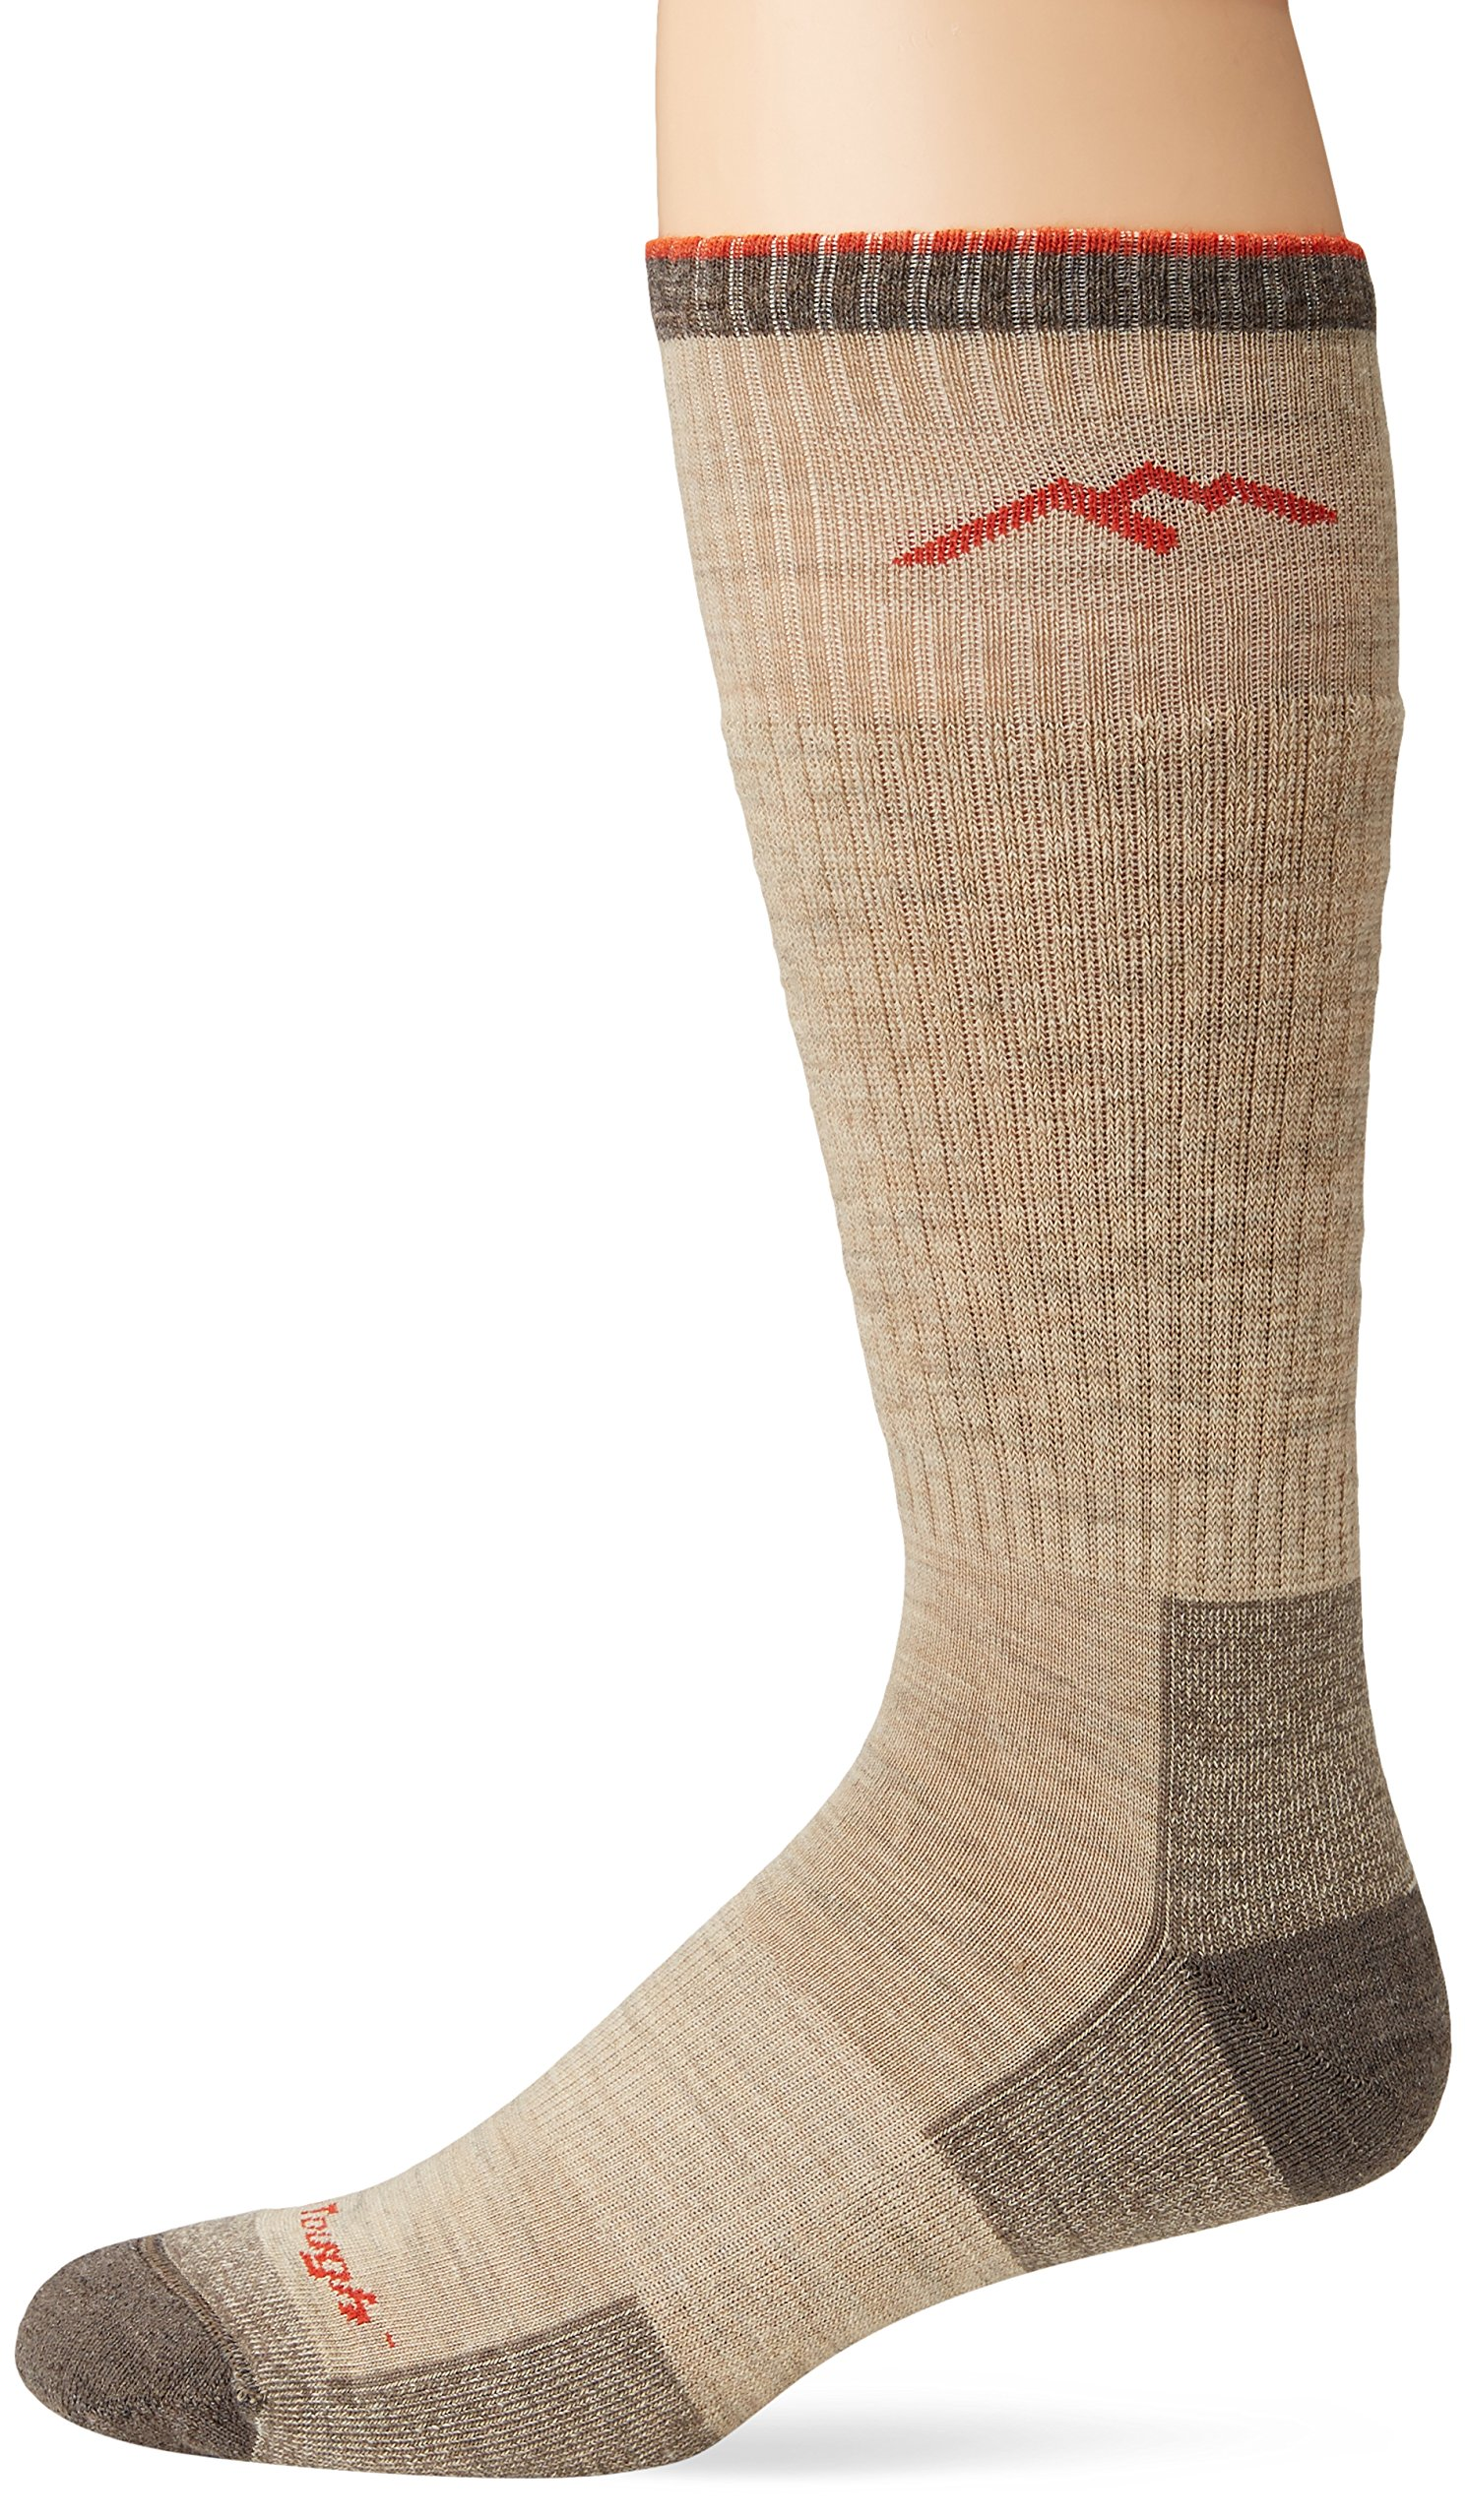 Darn Tough Vermont Men's Merino Wool Boot Cushion Hiking Socks, Oatmeal, X-Large by Darn Tough